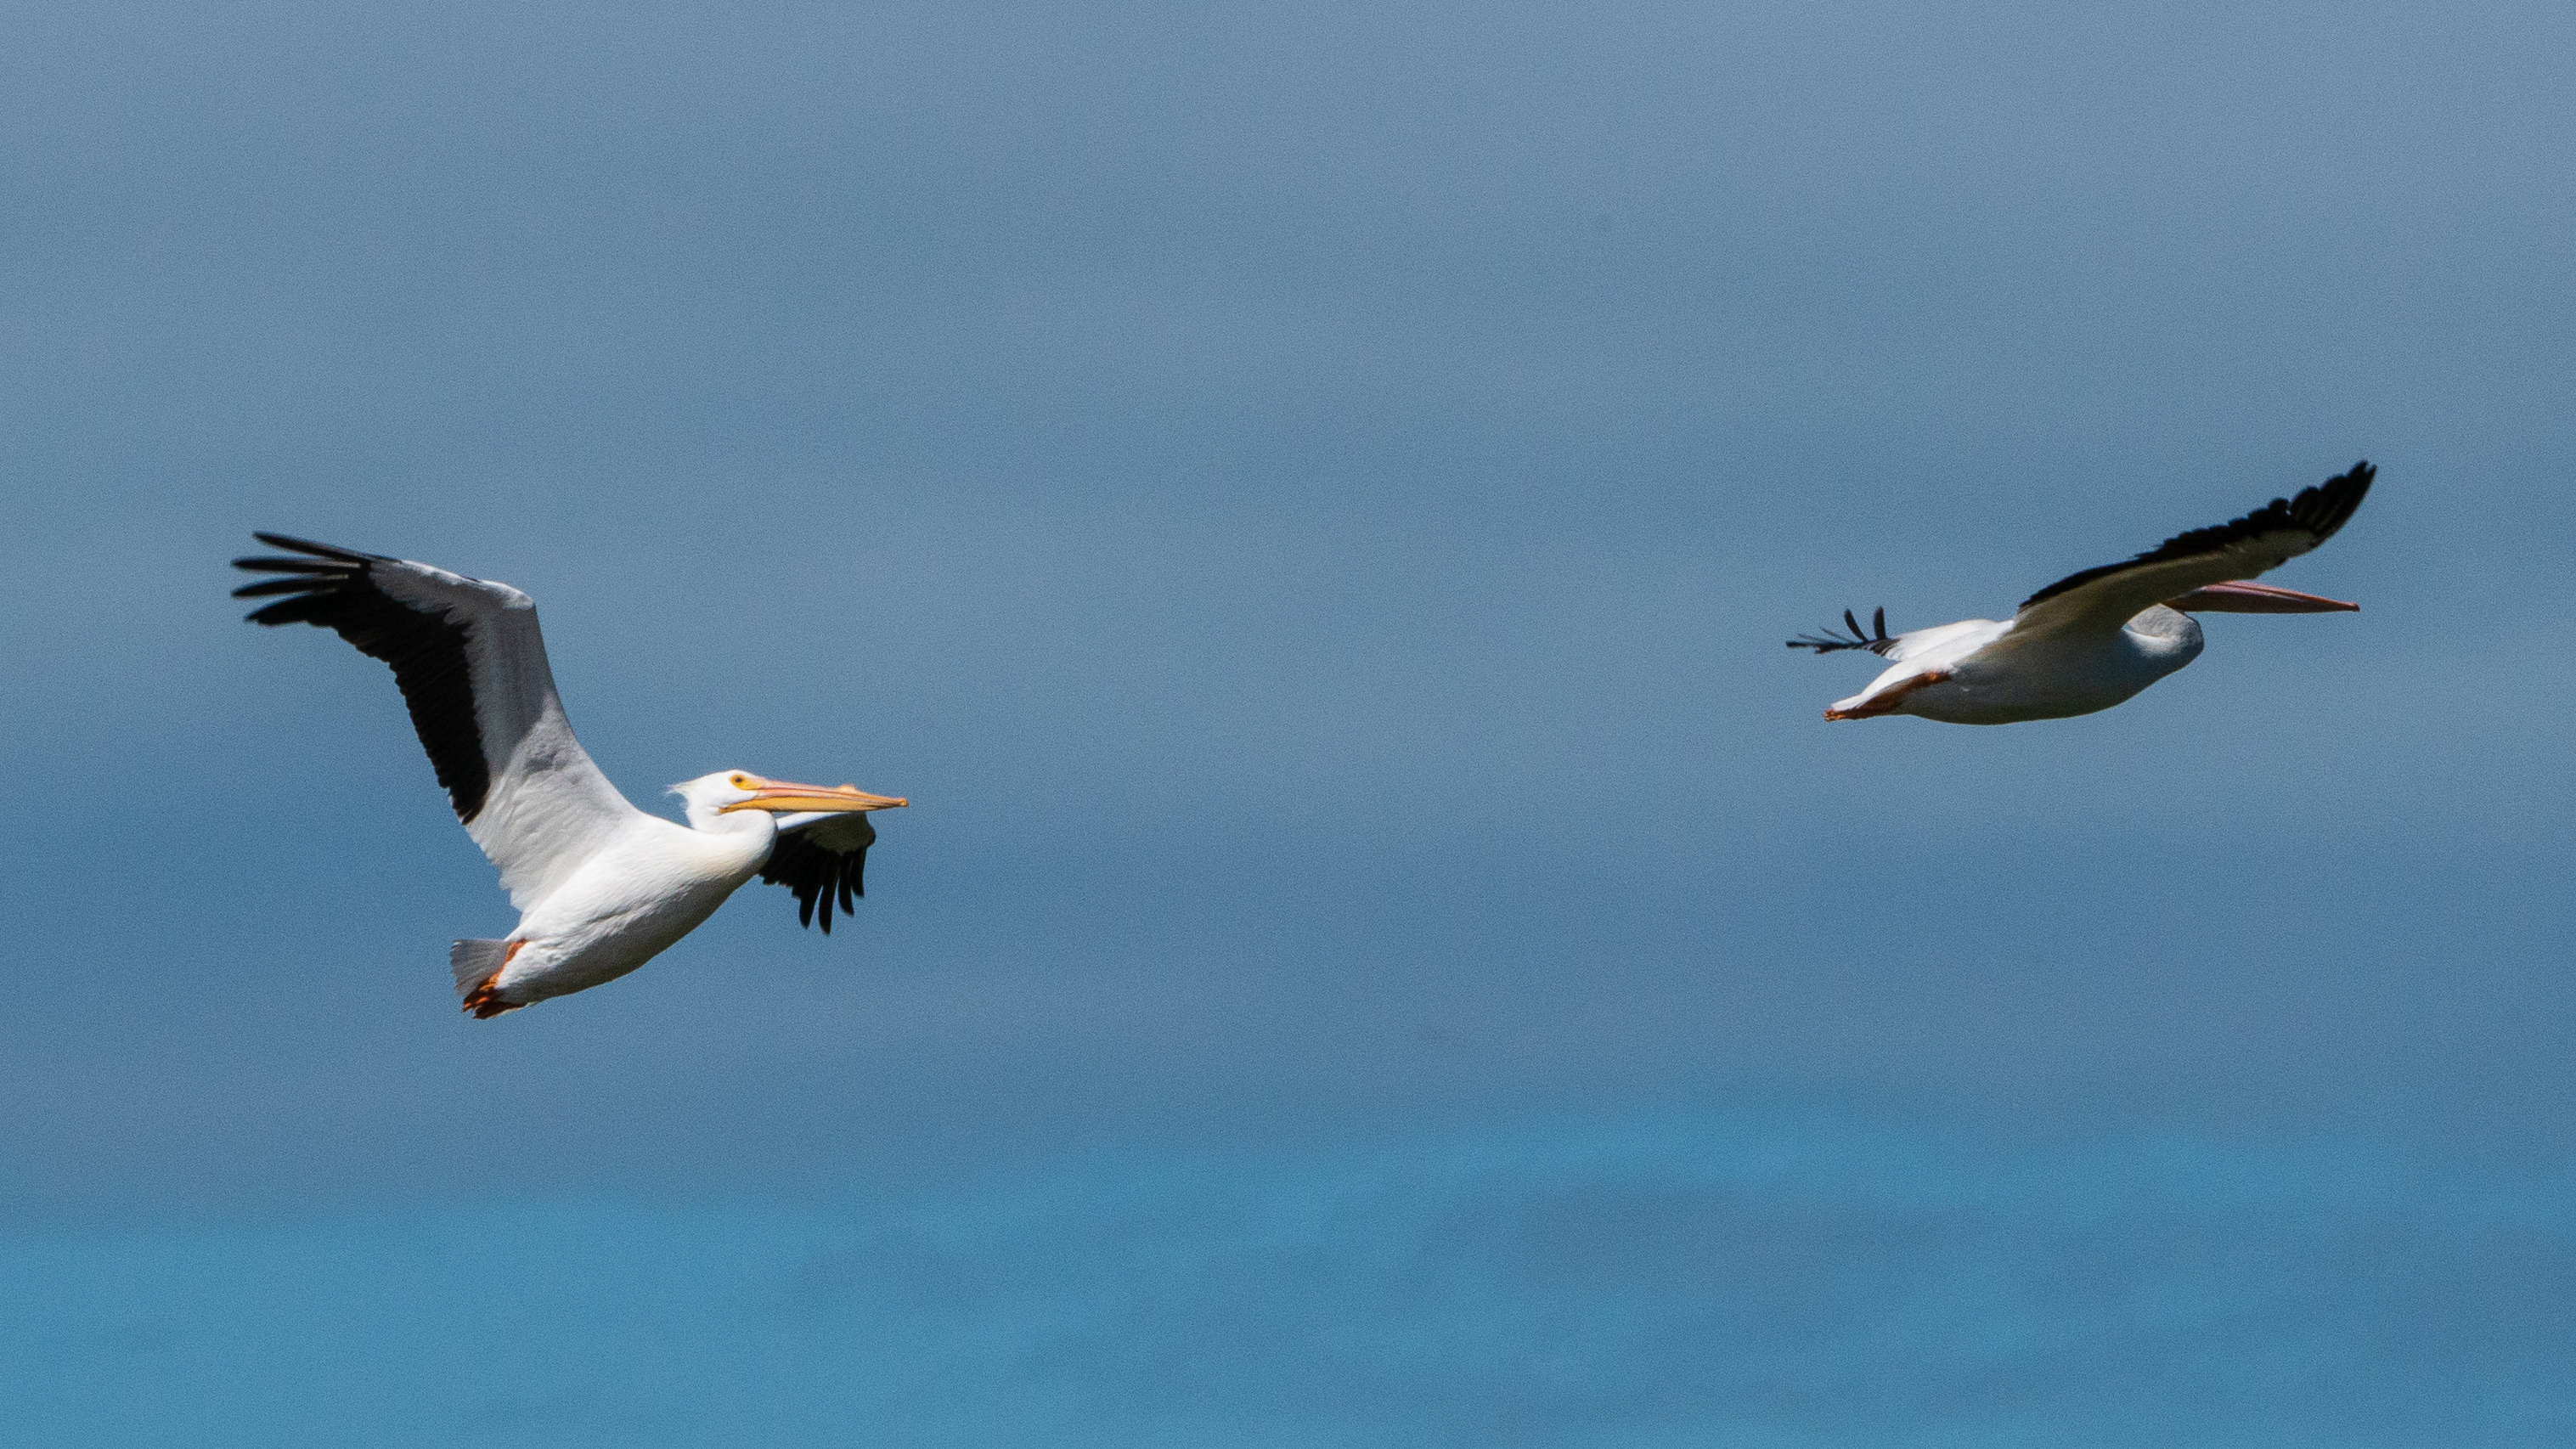 #whitepelican, #pelican, #flying, #inflight, #wings, #sky, #howto, #nikon, #tamron